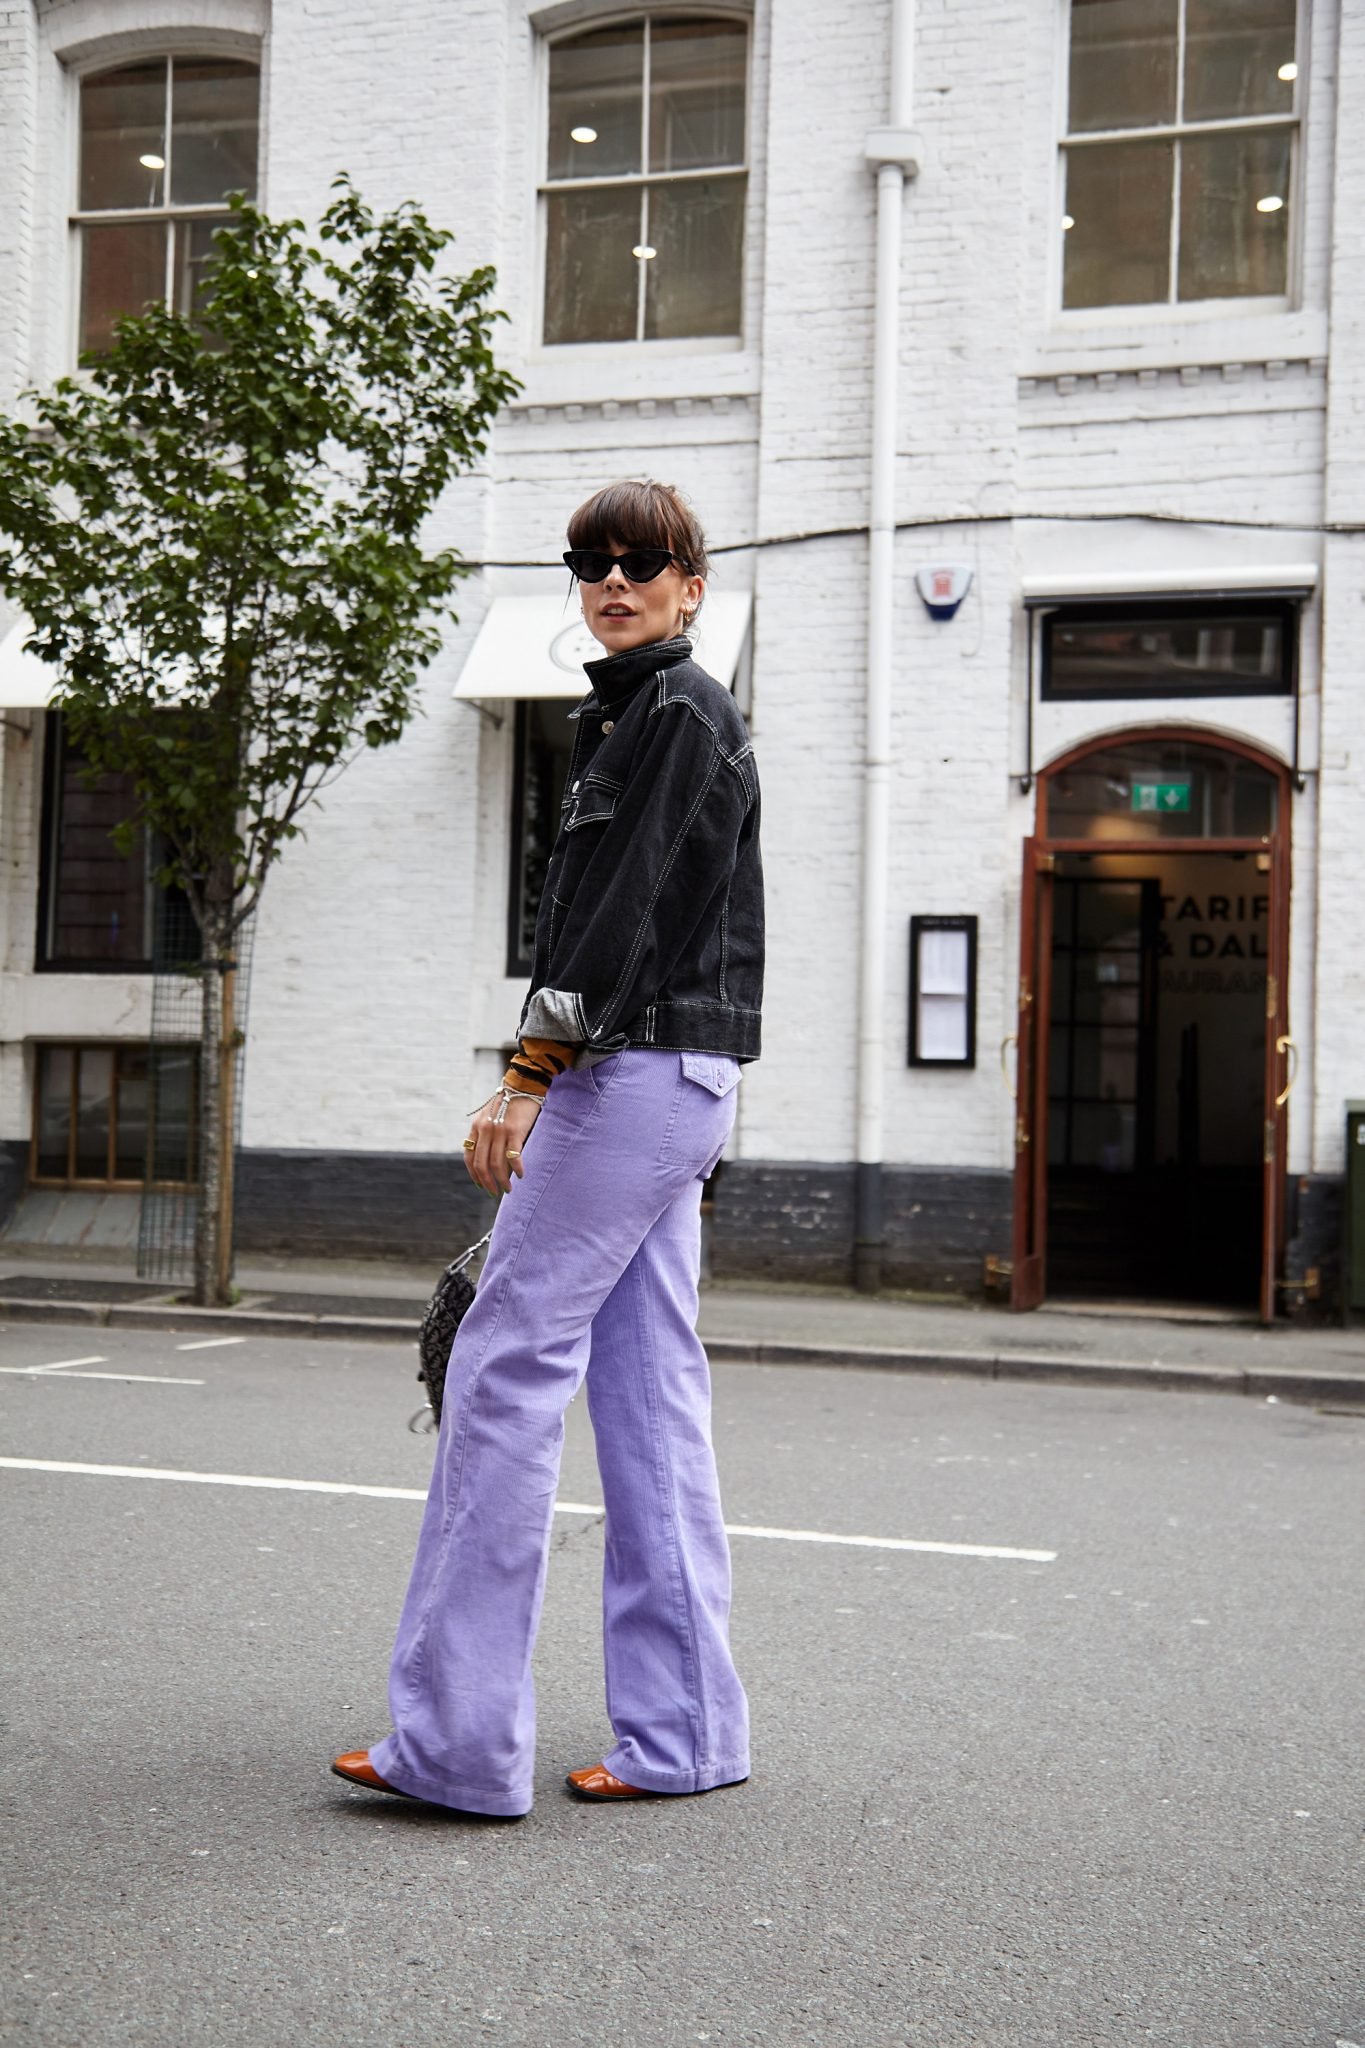 HOW TO WEAR LILAC THIS SEASON